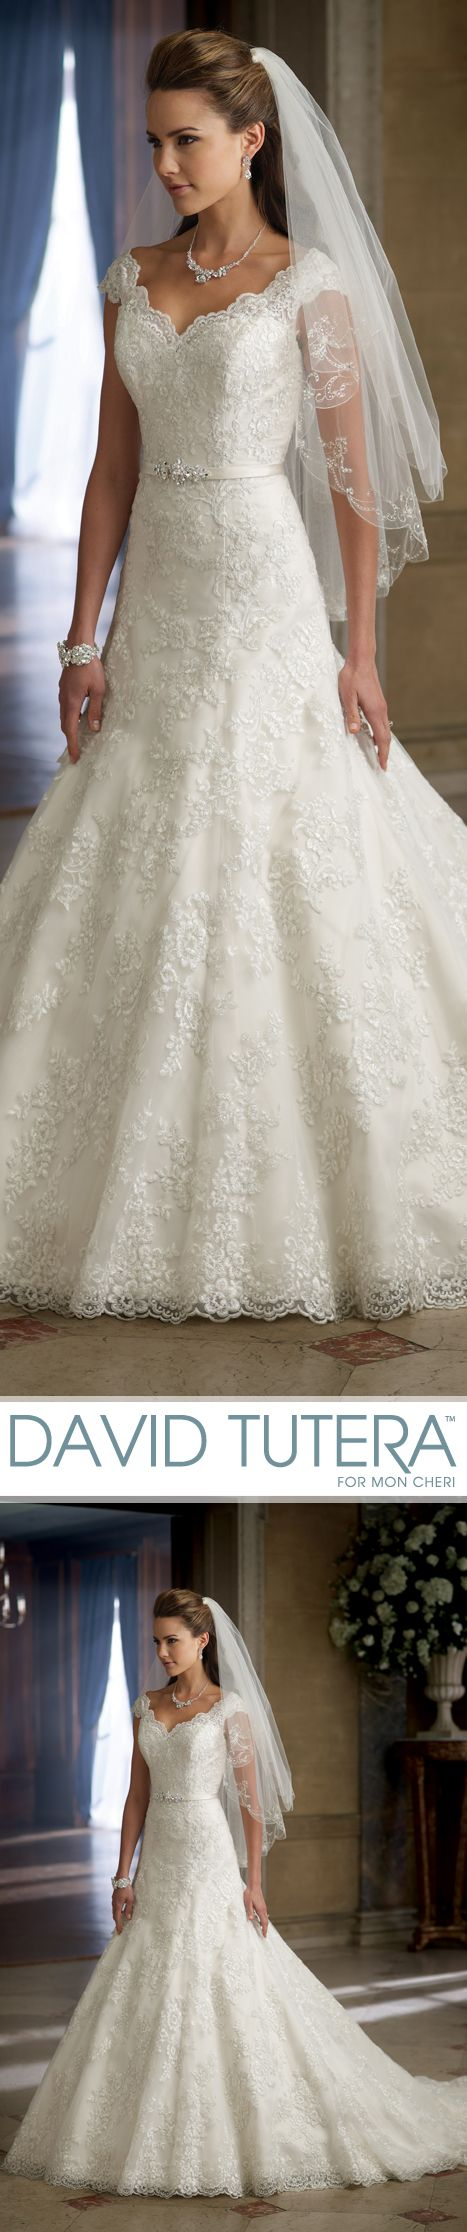 Lace cap sleeve a line wedding dress  Possibly this dress An all over embroidered lace tulle and